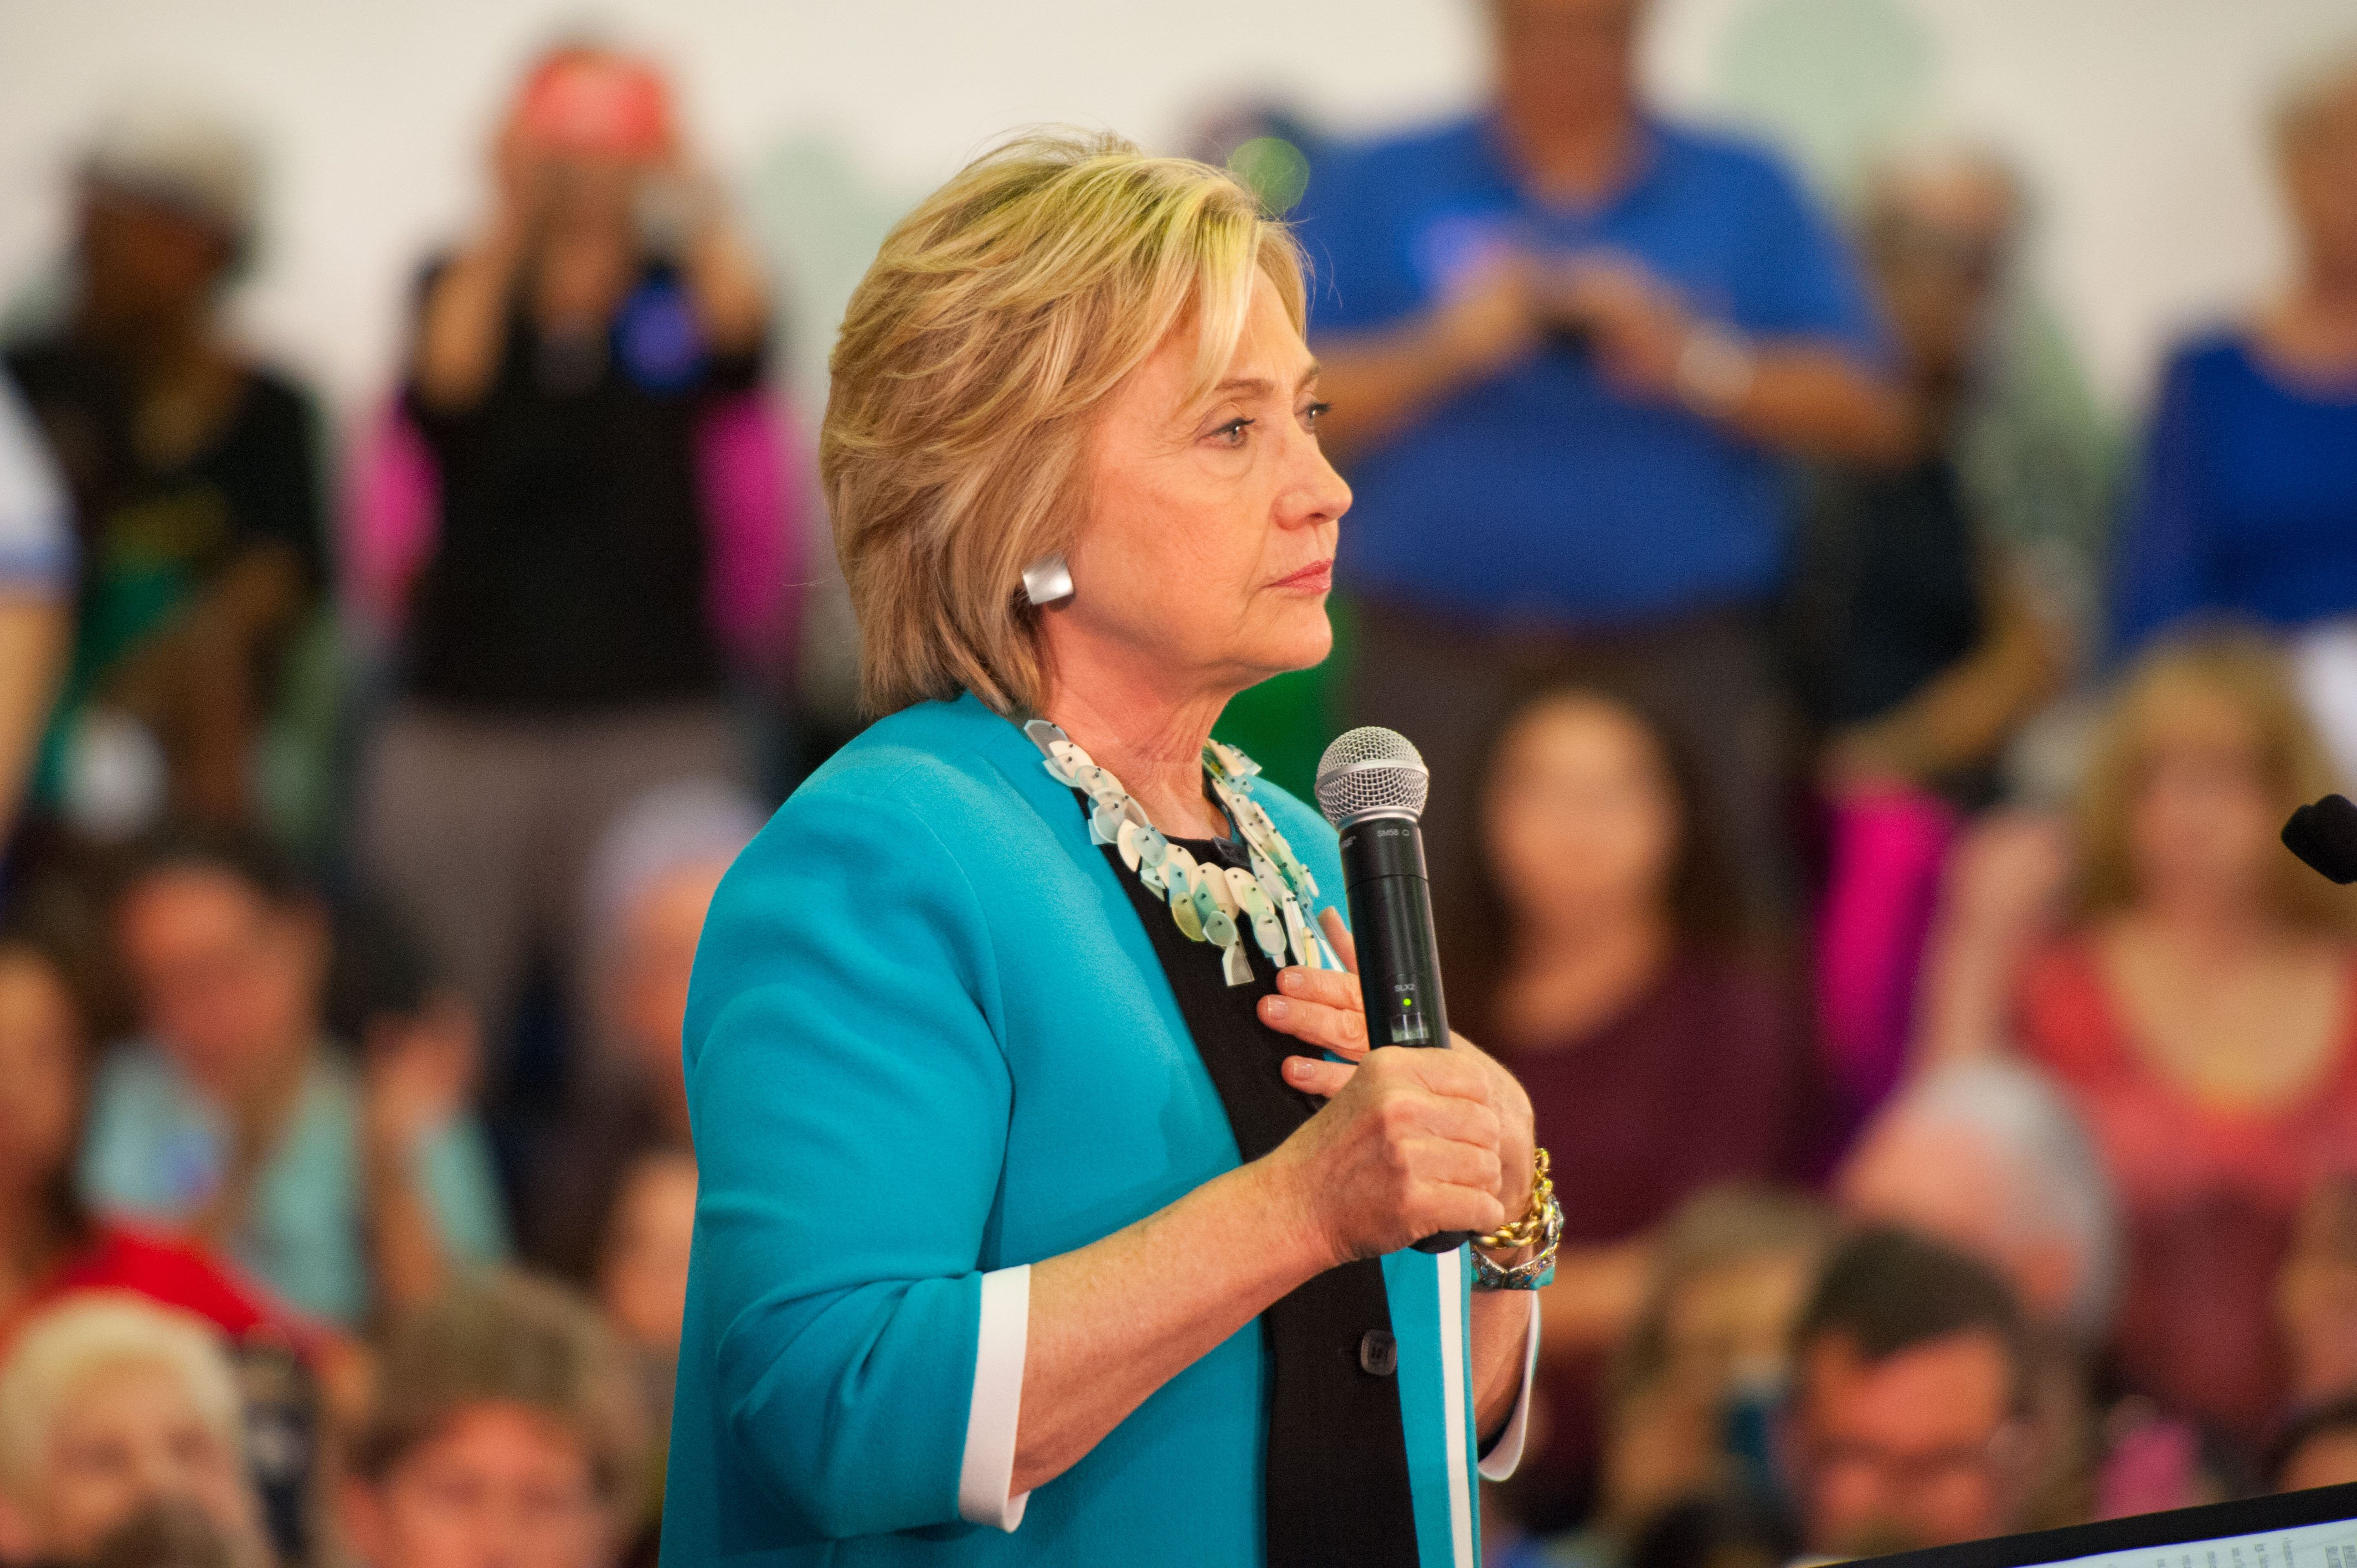 Hillary Clinton speaks at Broward College for Organzing Grassroots event in Davie, Florida on Oct. 2, 2015.